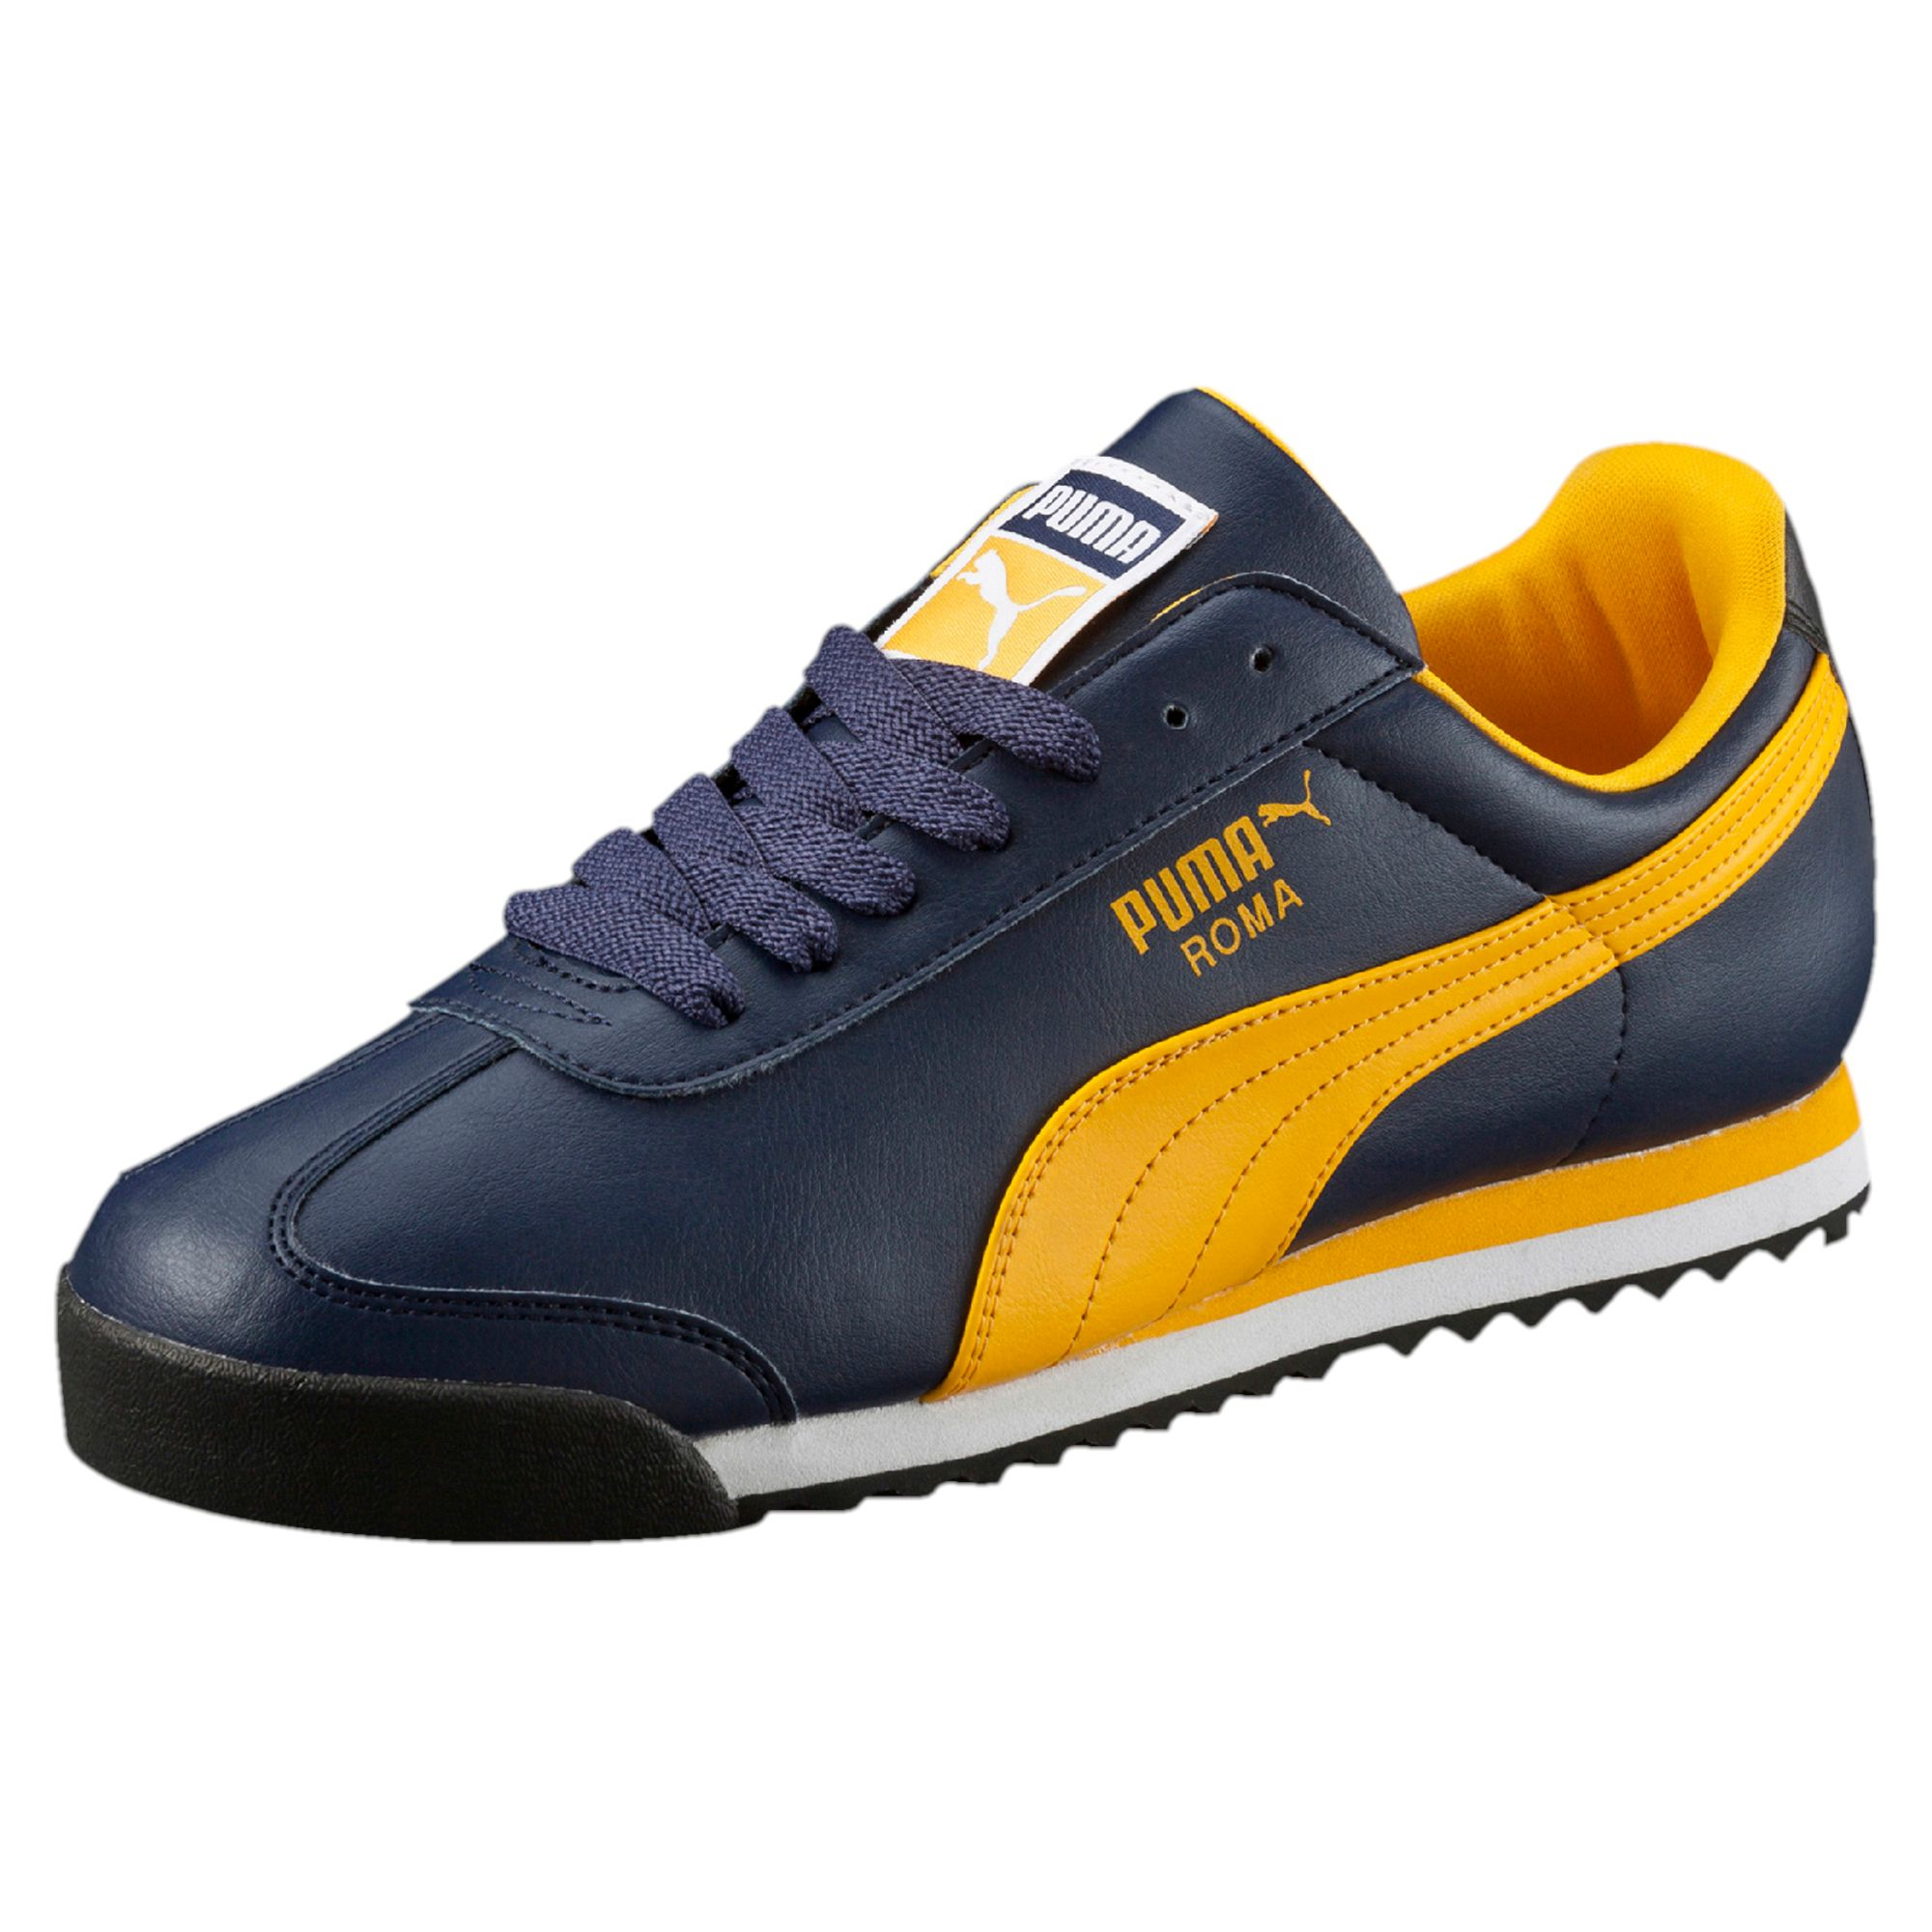 Lyst - PUMA Roma Men s Sneakers in Yellow for Men d5bf6b88b57f